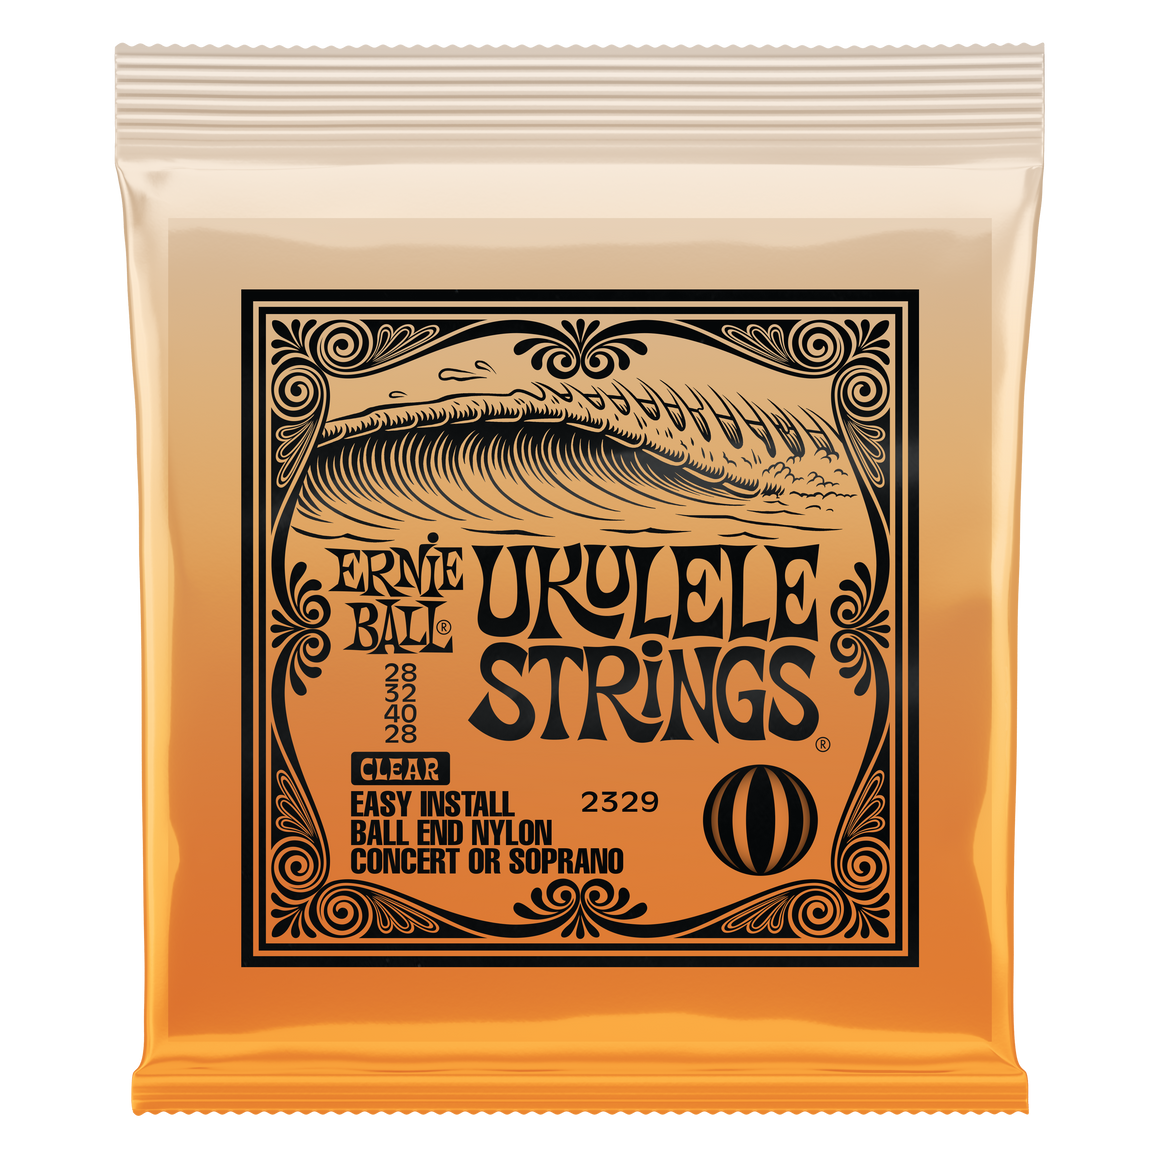 Ernie Ball 2329 Clear Concert Soprano Strings